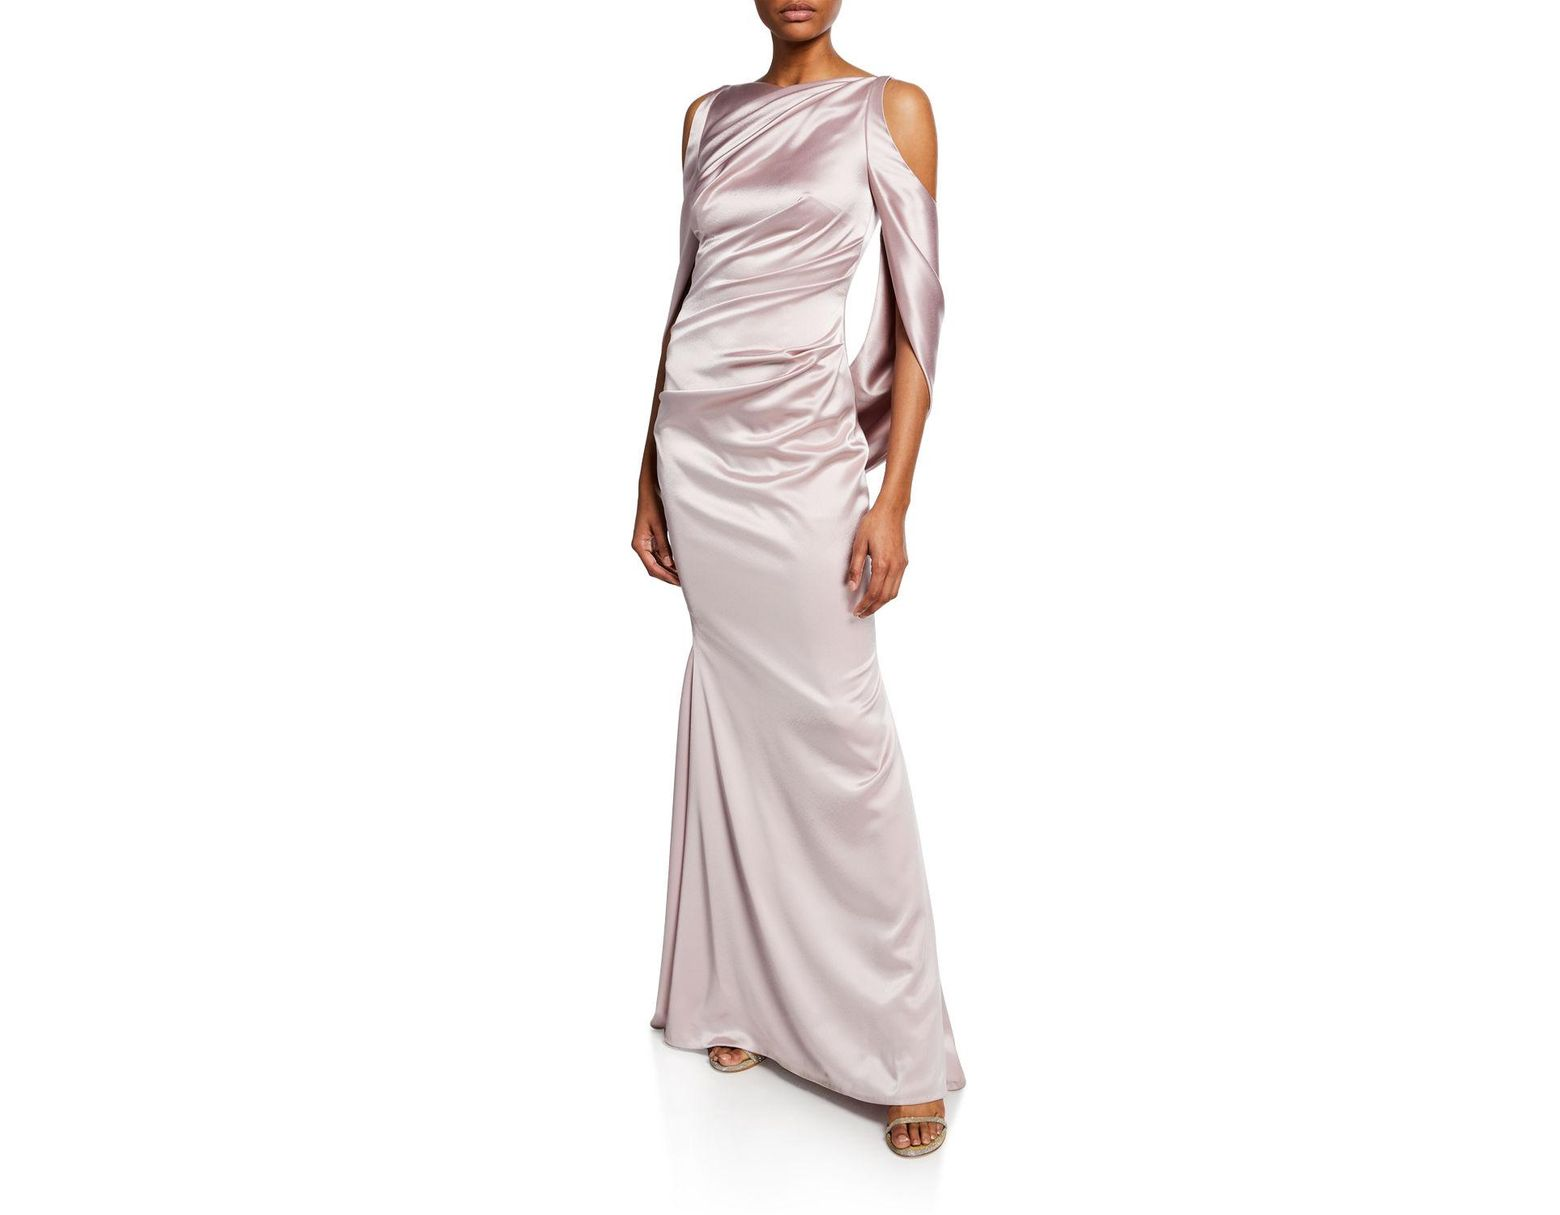 afa45c07f01 Talbot Runhof Ponceau High-neck Draped Bodice Shiny   Matte Crepe Satin  Evening Gown in Pink - Lyst